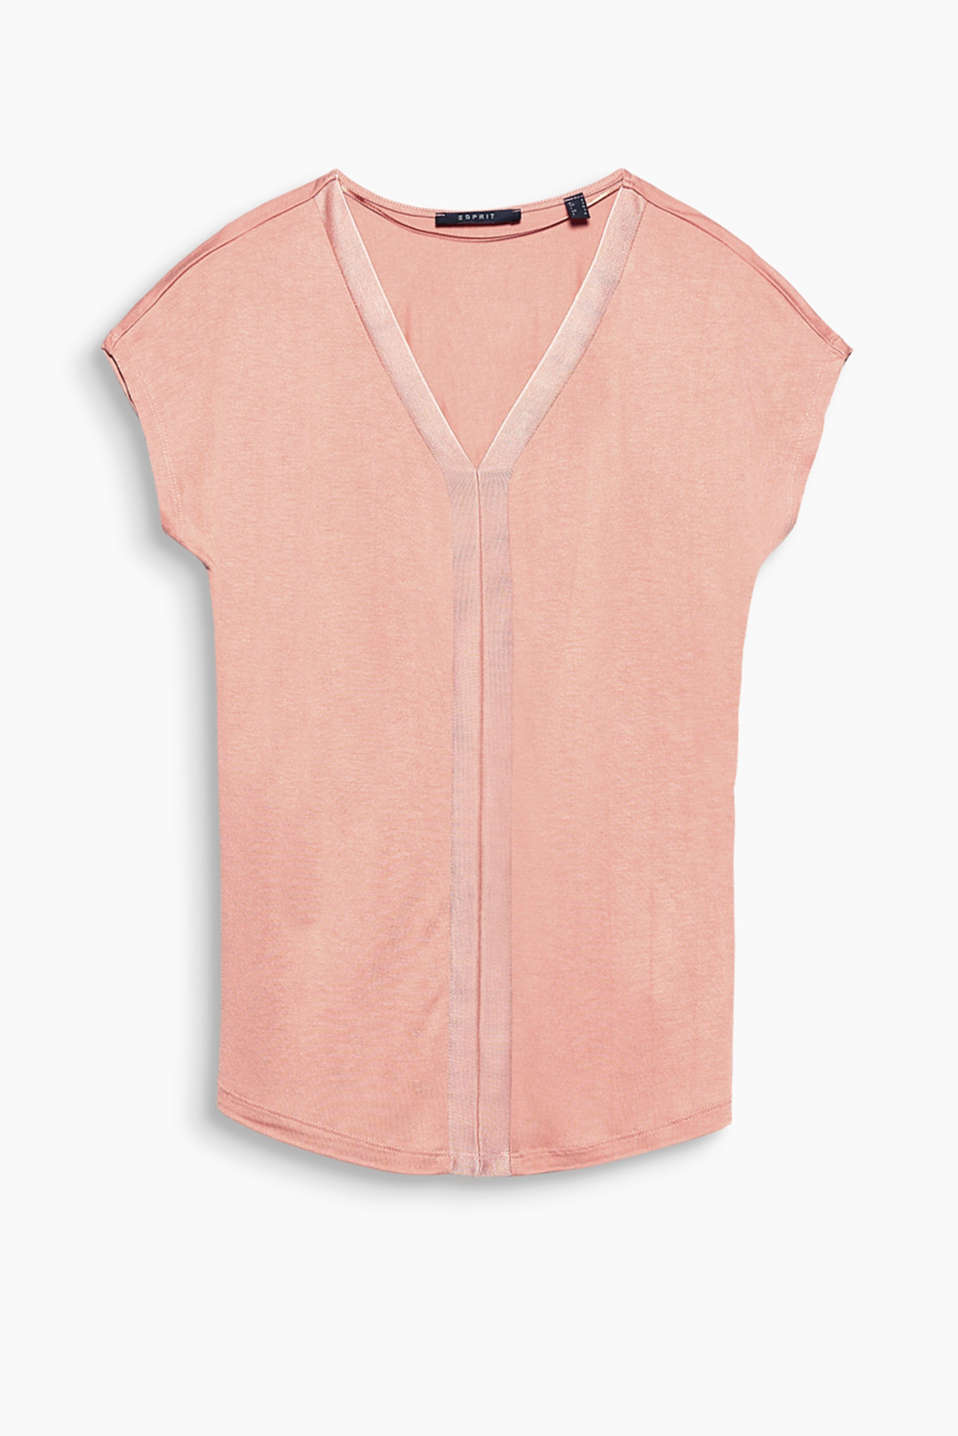 Flowing V-neck top with shiny ribbed trims